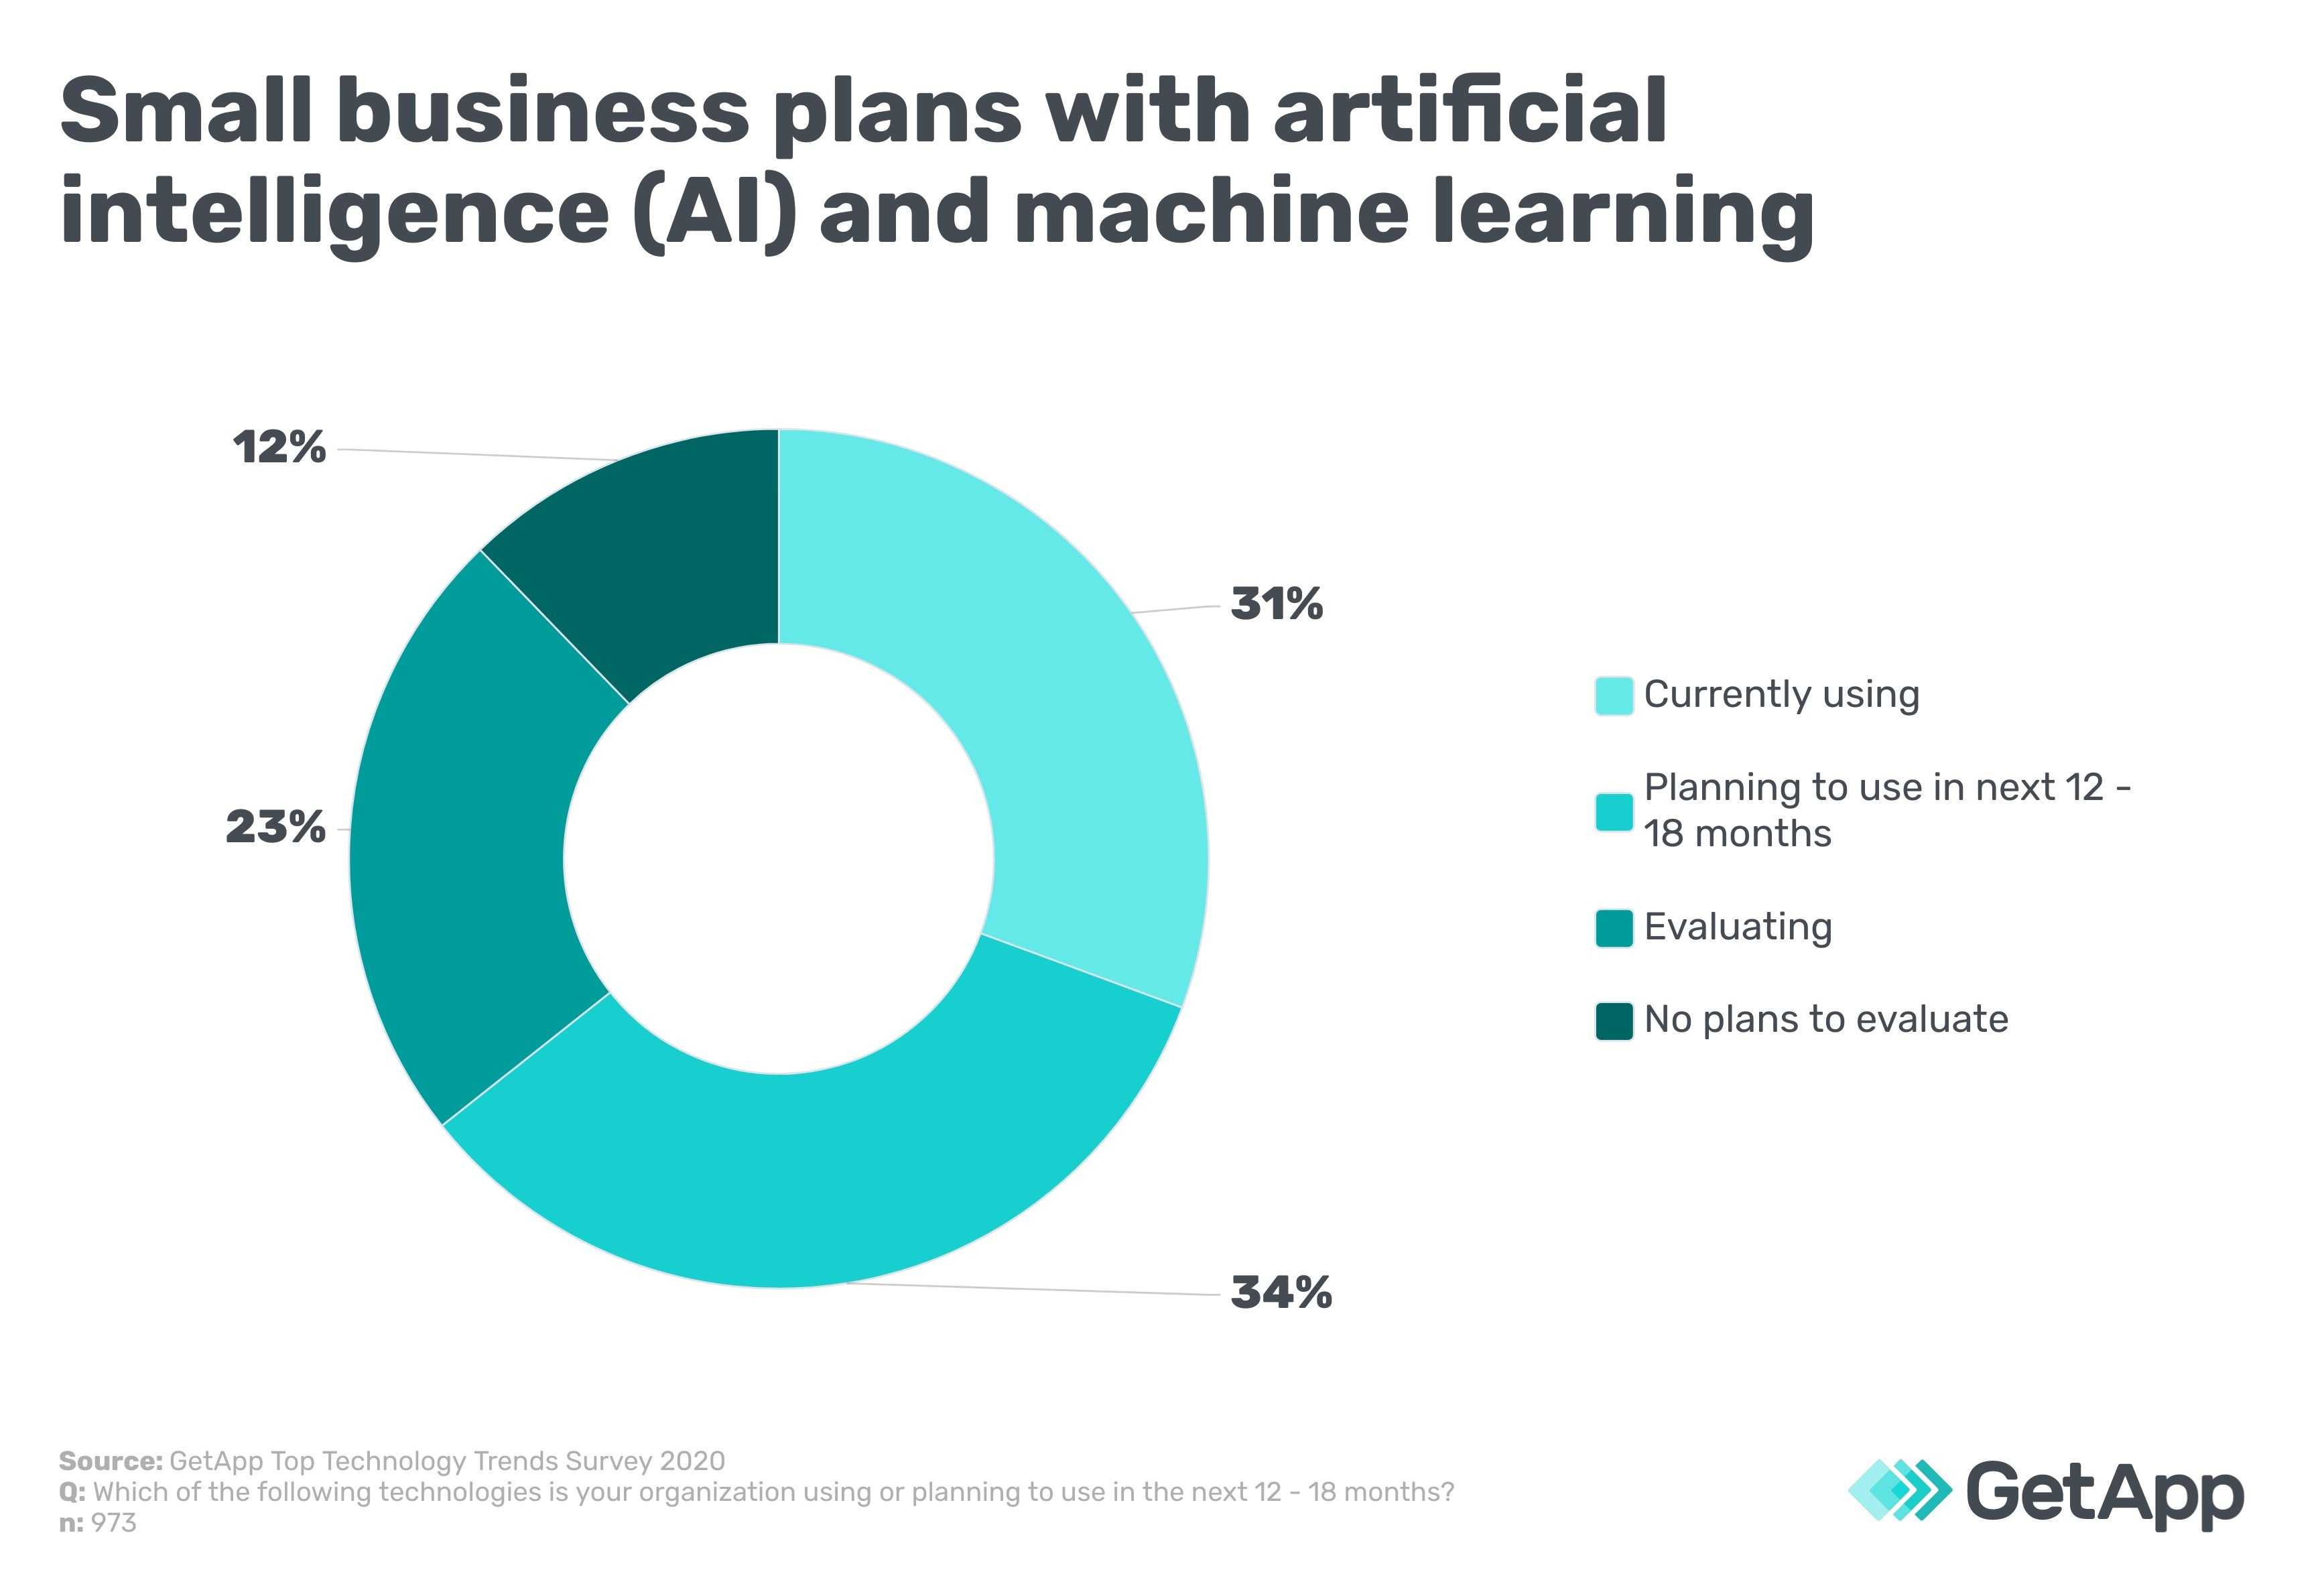 Small business plans with artificial intelligence (AI) and machine learning